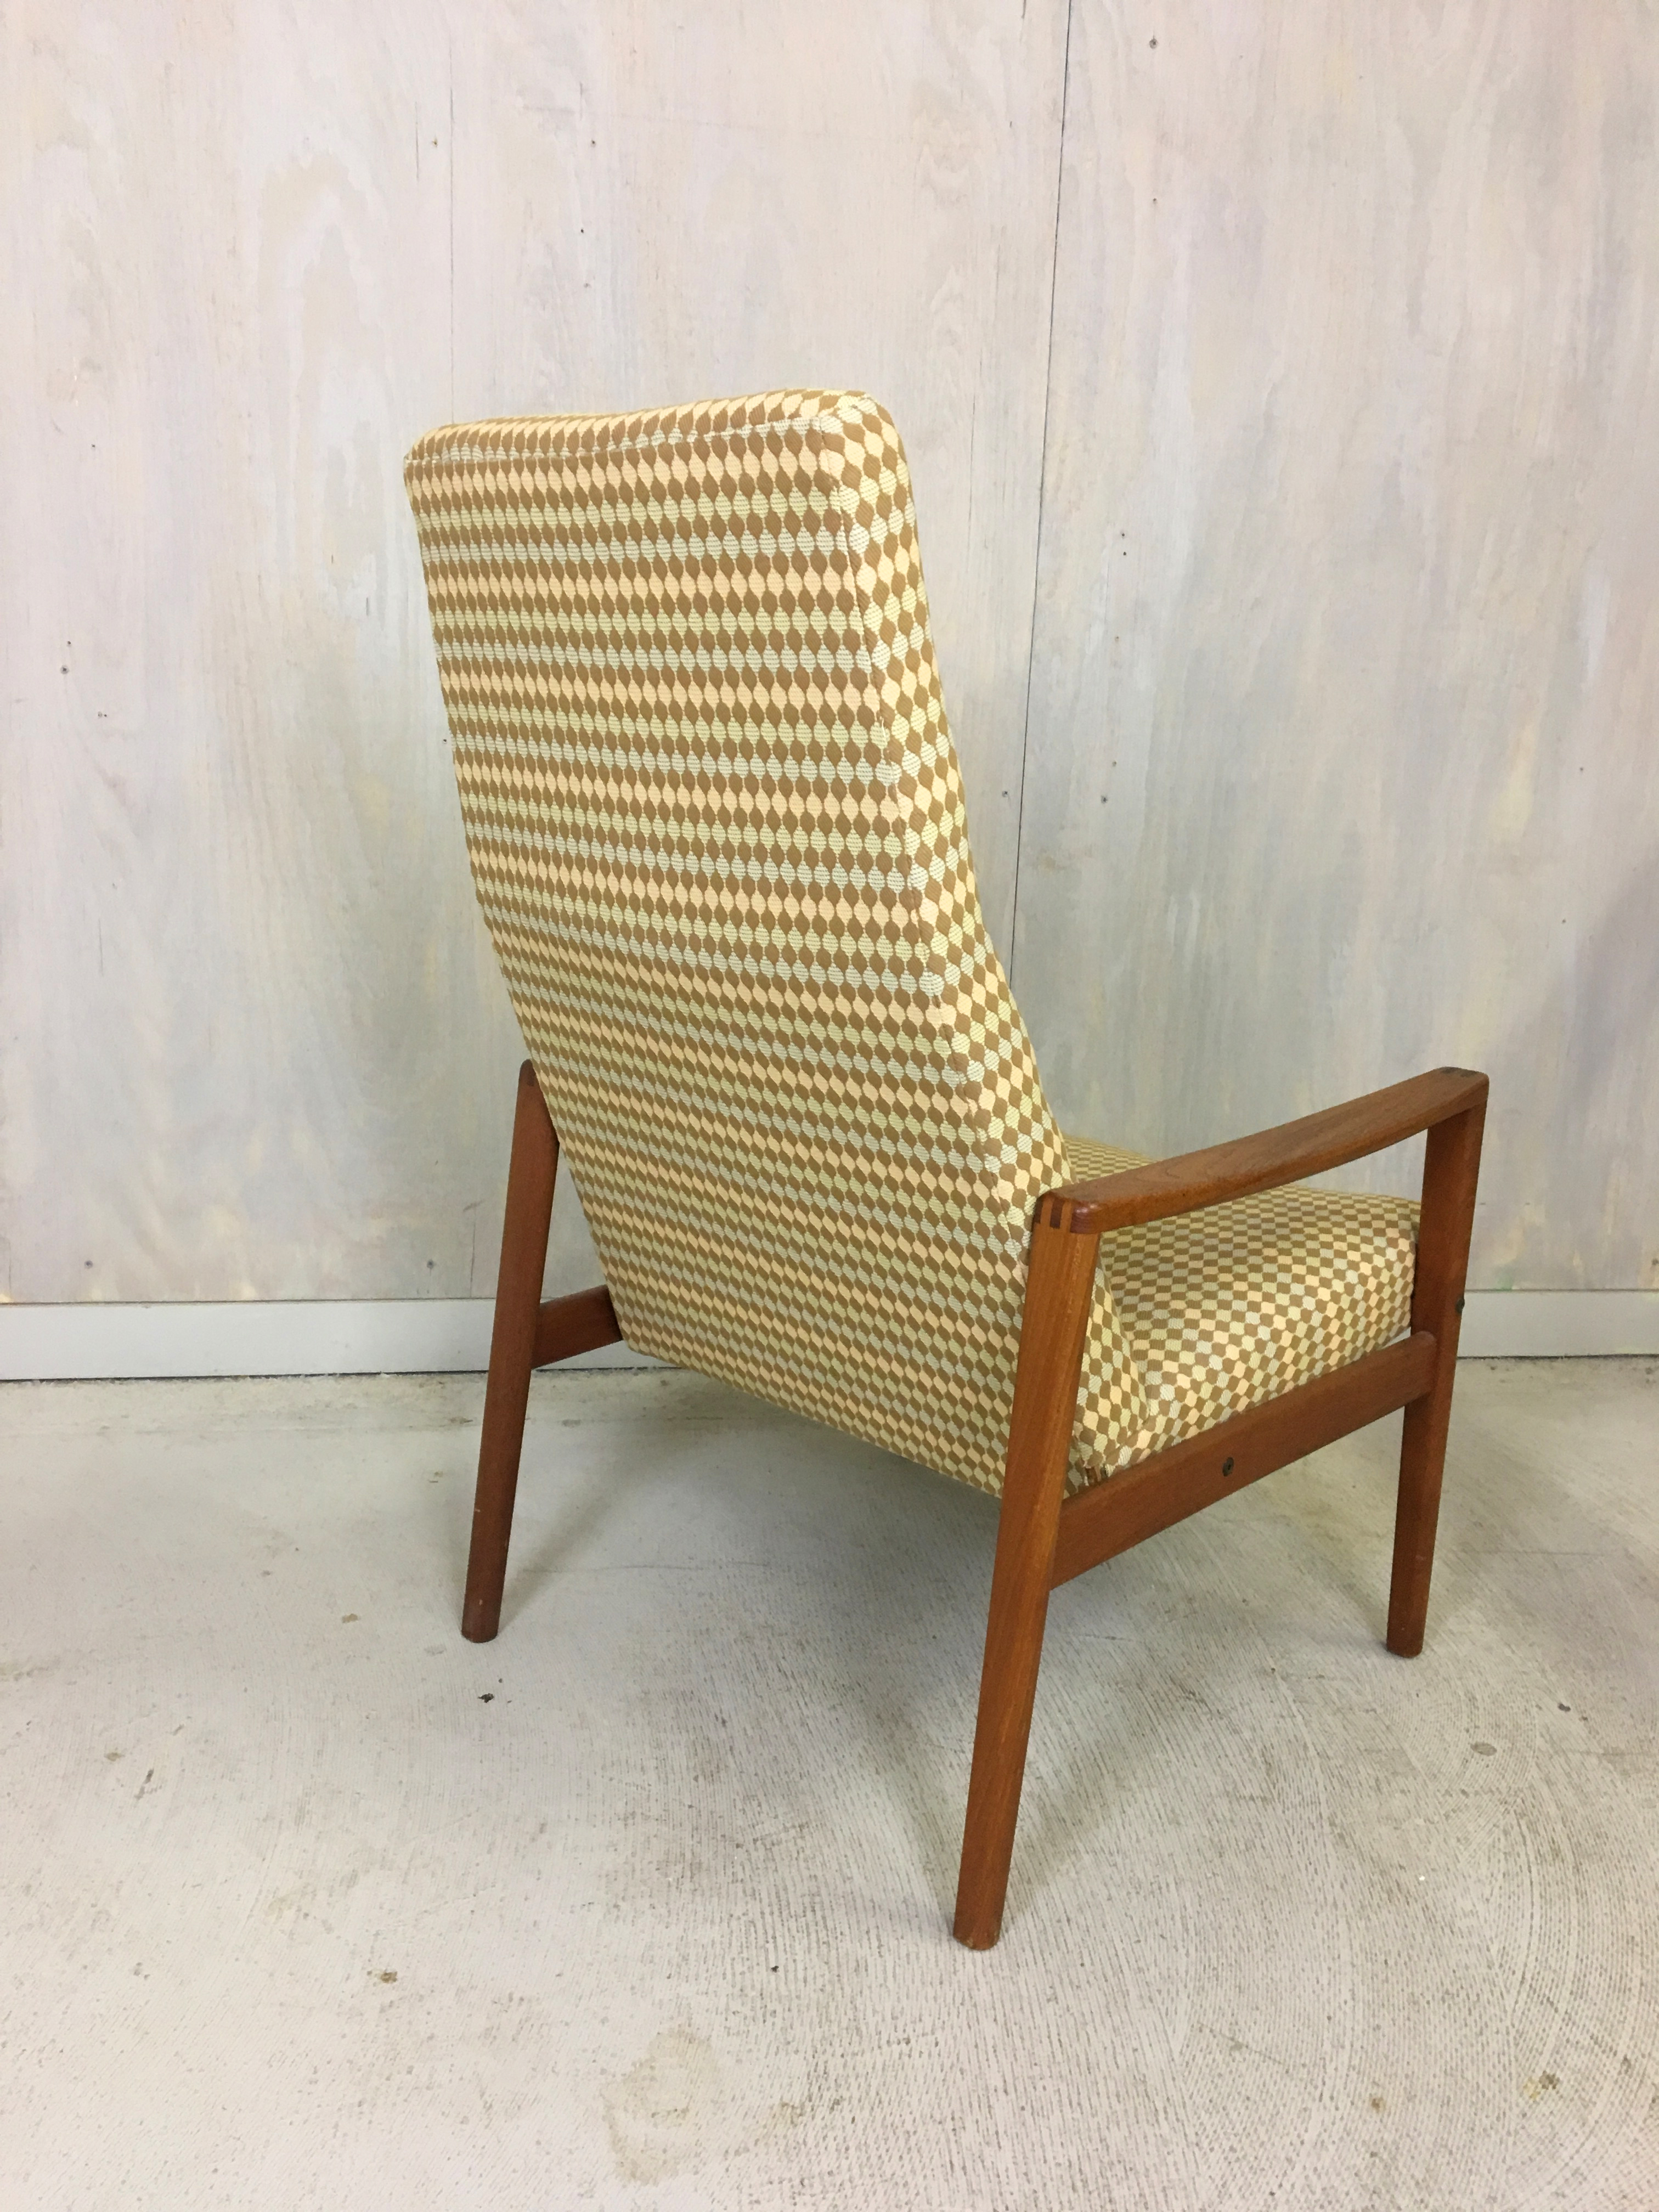 Ulferts Upholstered Lounge Chair with Teak Frame